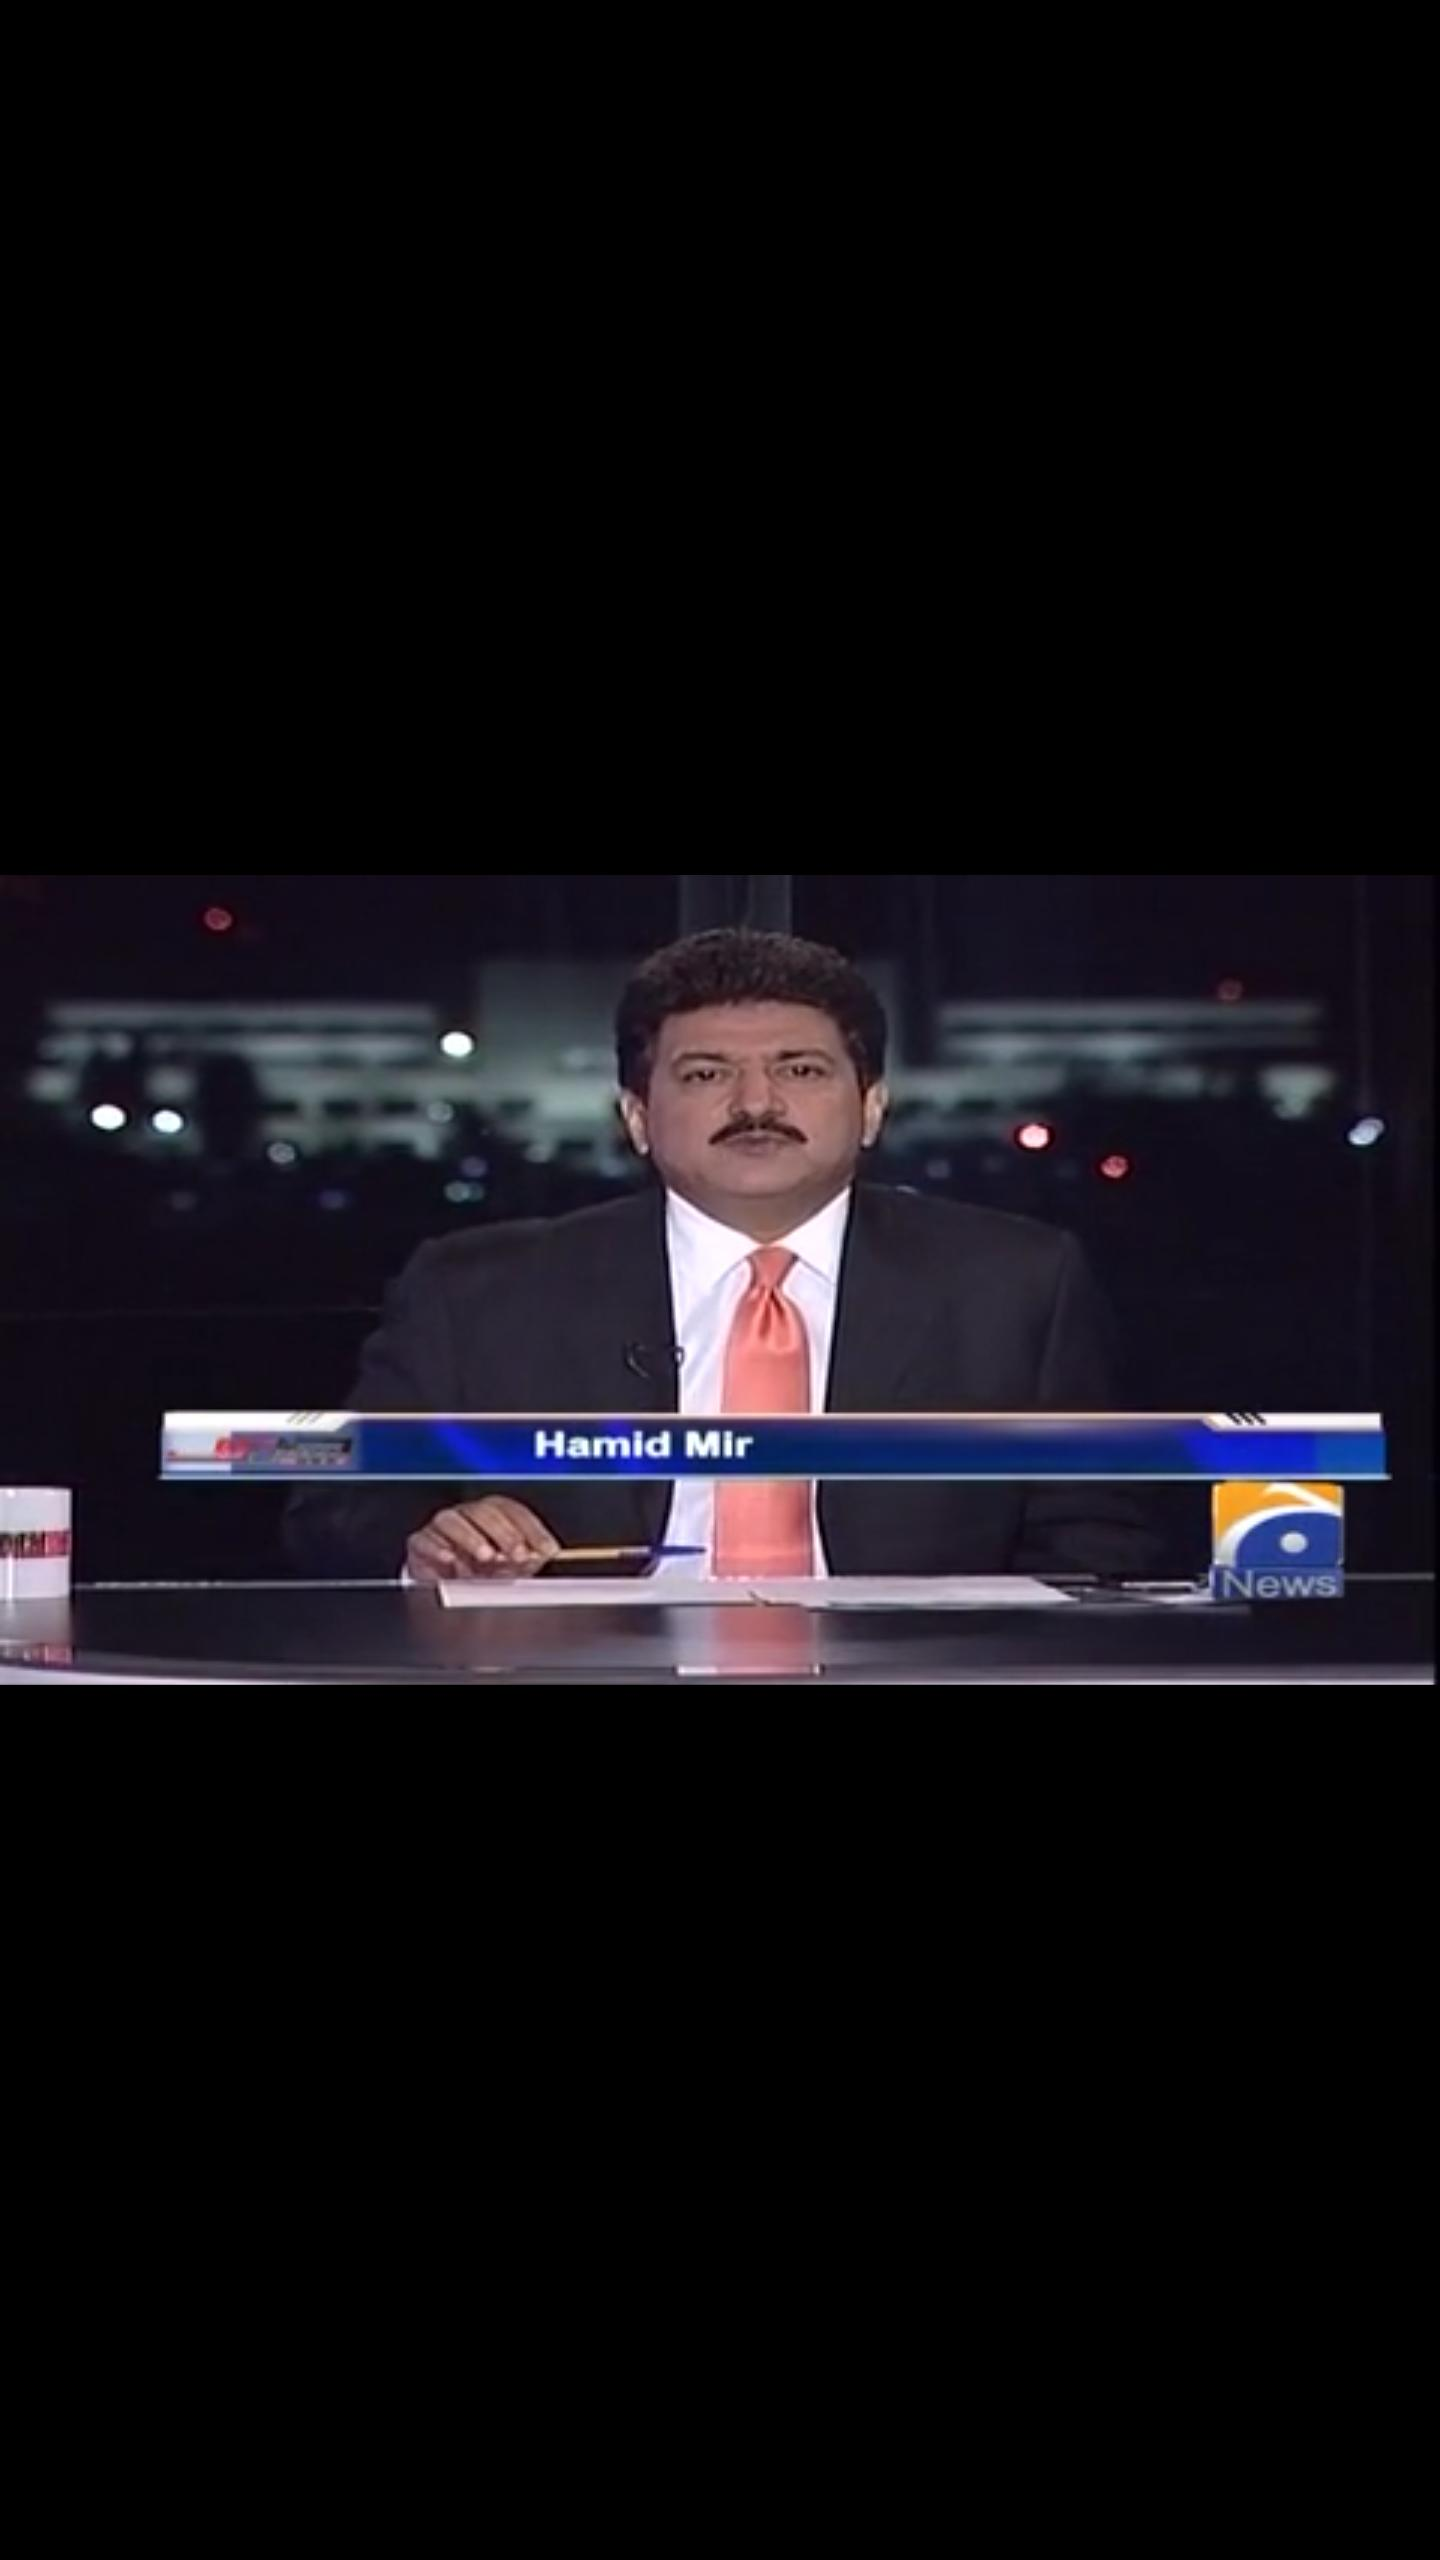 Geo News for Android - APK Download